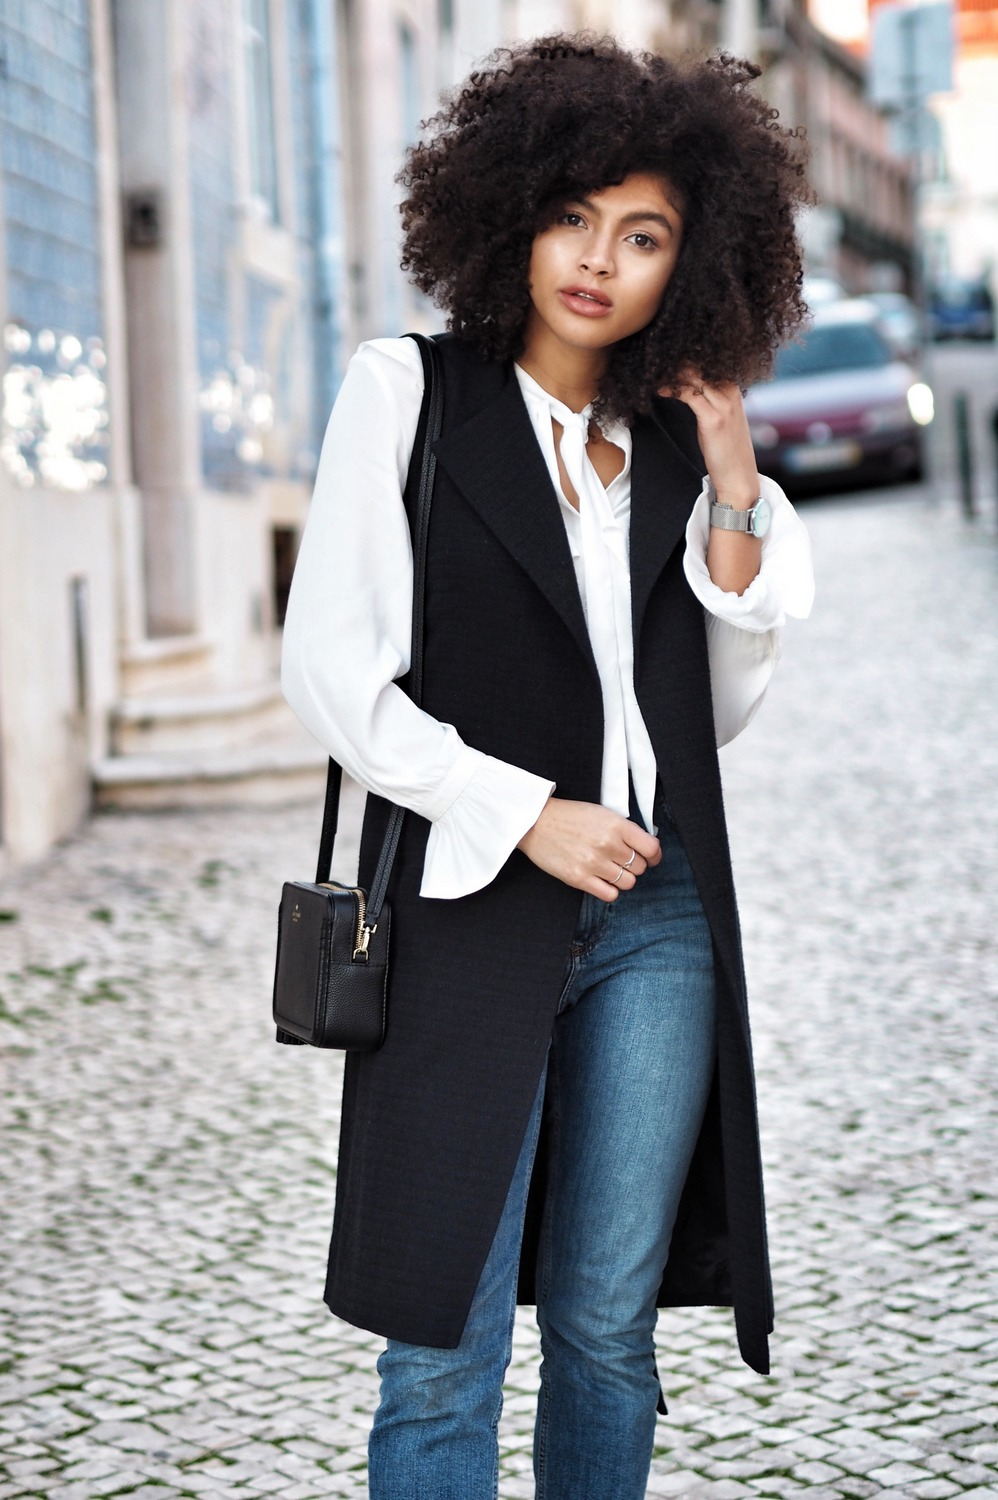 Asos Denim Farleigh Mom Jeans Navy Mint Velvet Coat and Topshop Frill Ivory Shirt Outfit